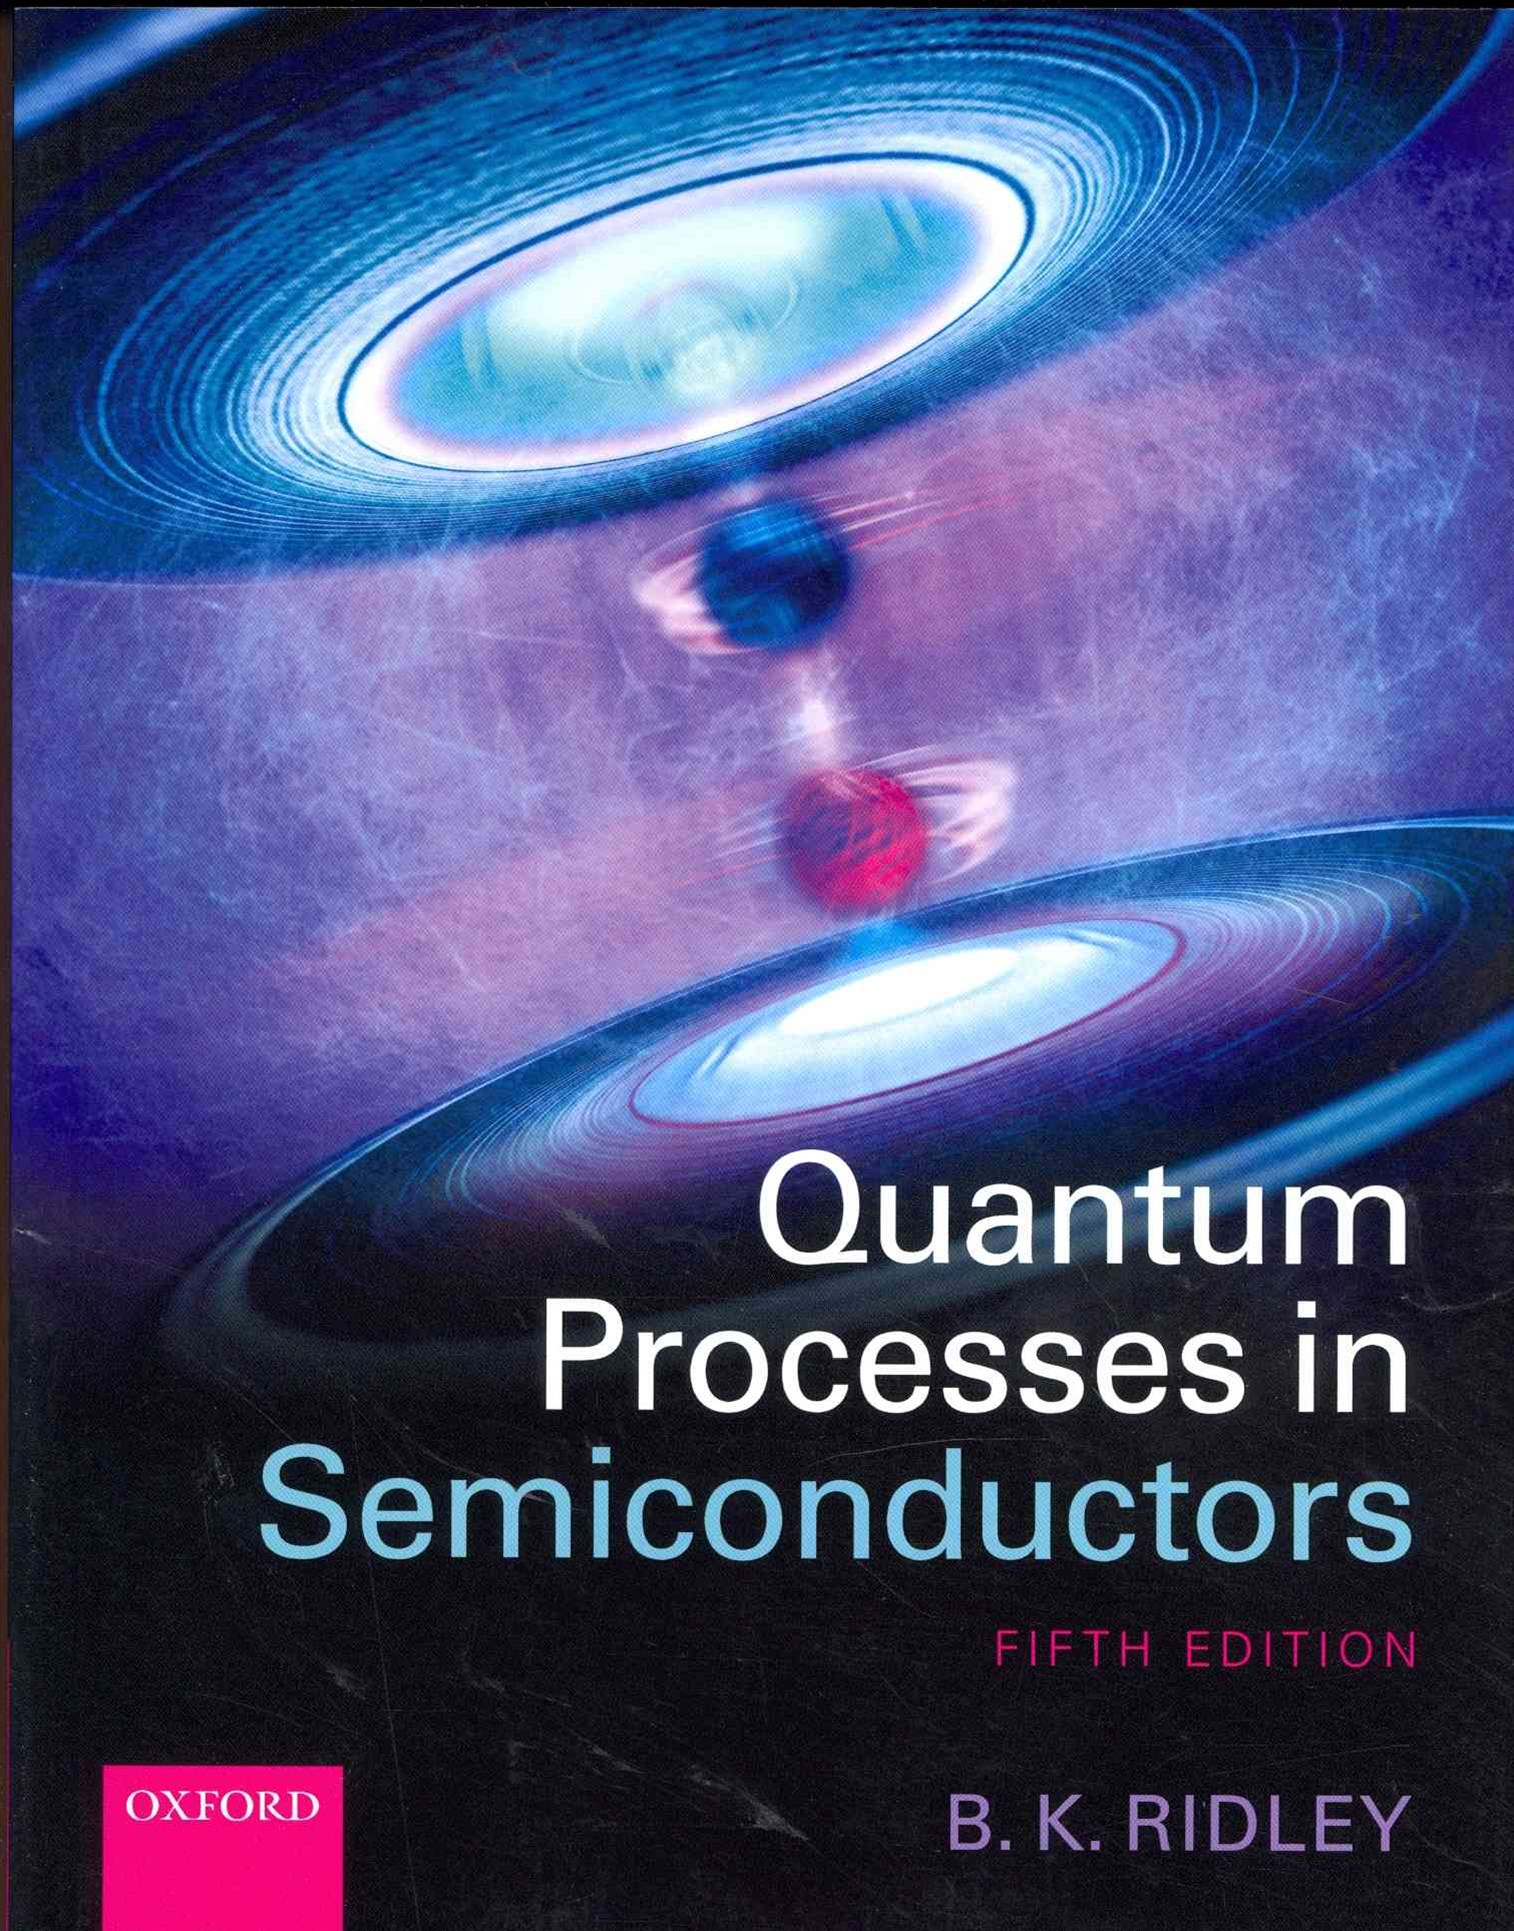 Quantum Processes in Semiconductors